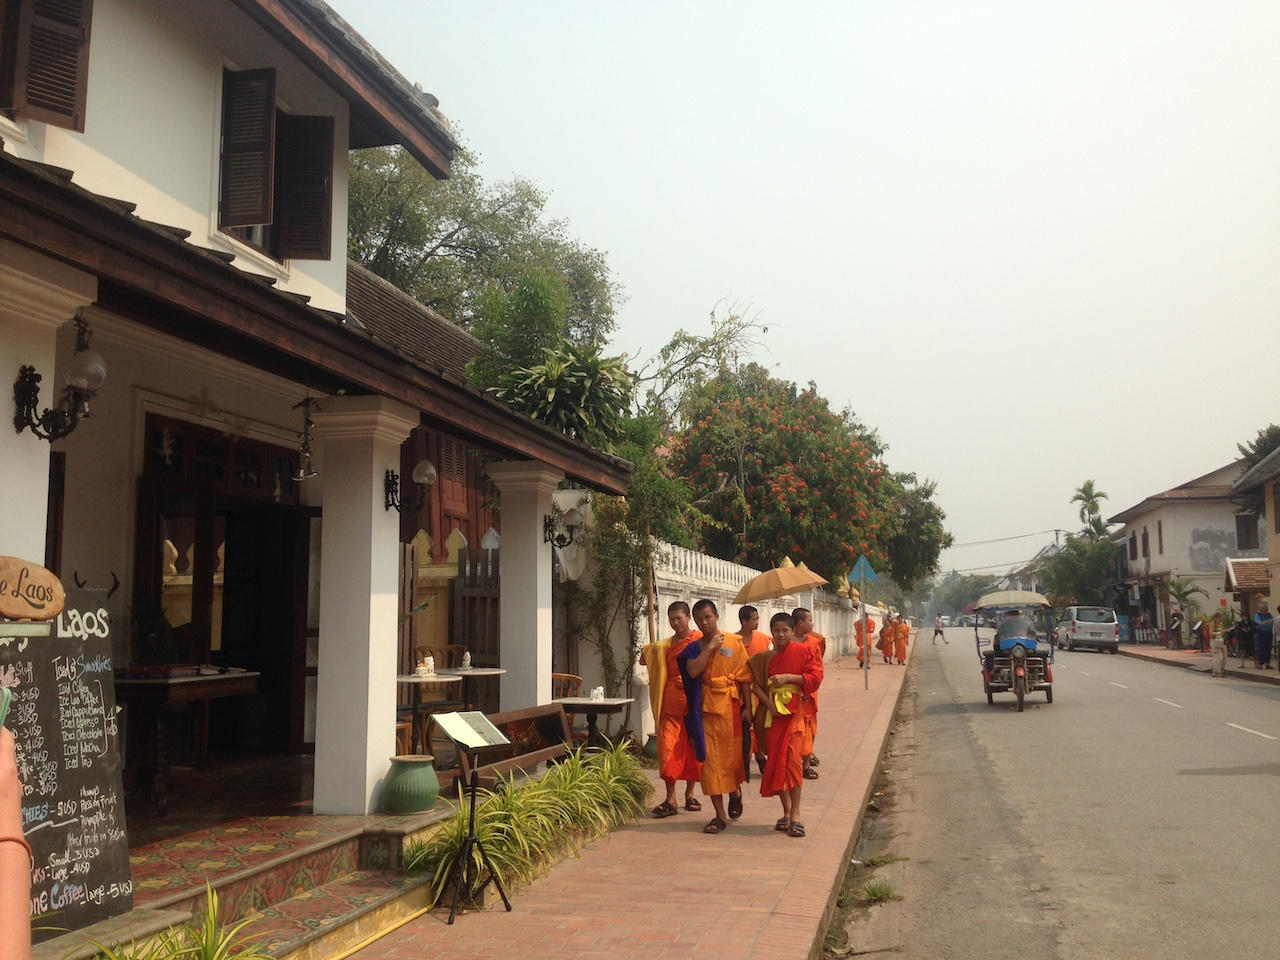 Luang Prabang – UNESCO World Heritage City